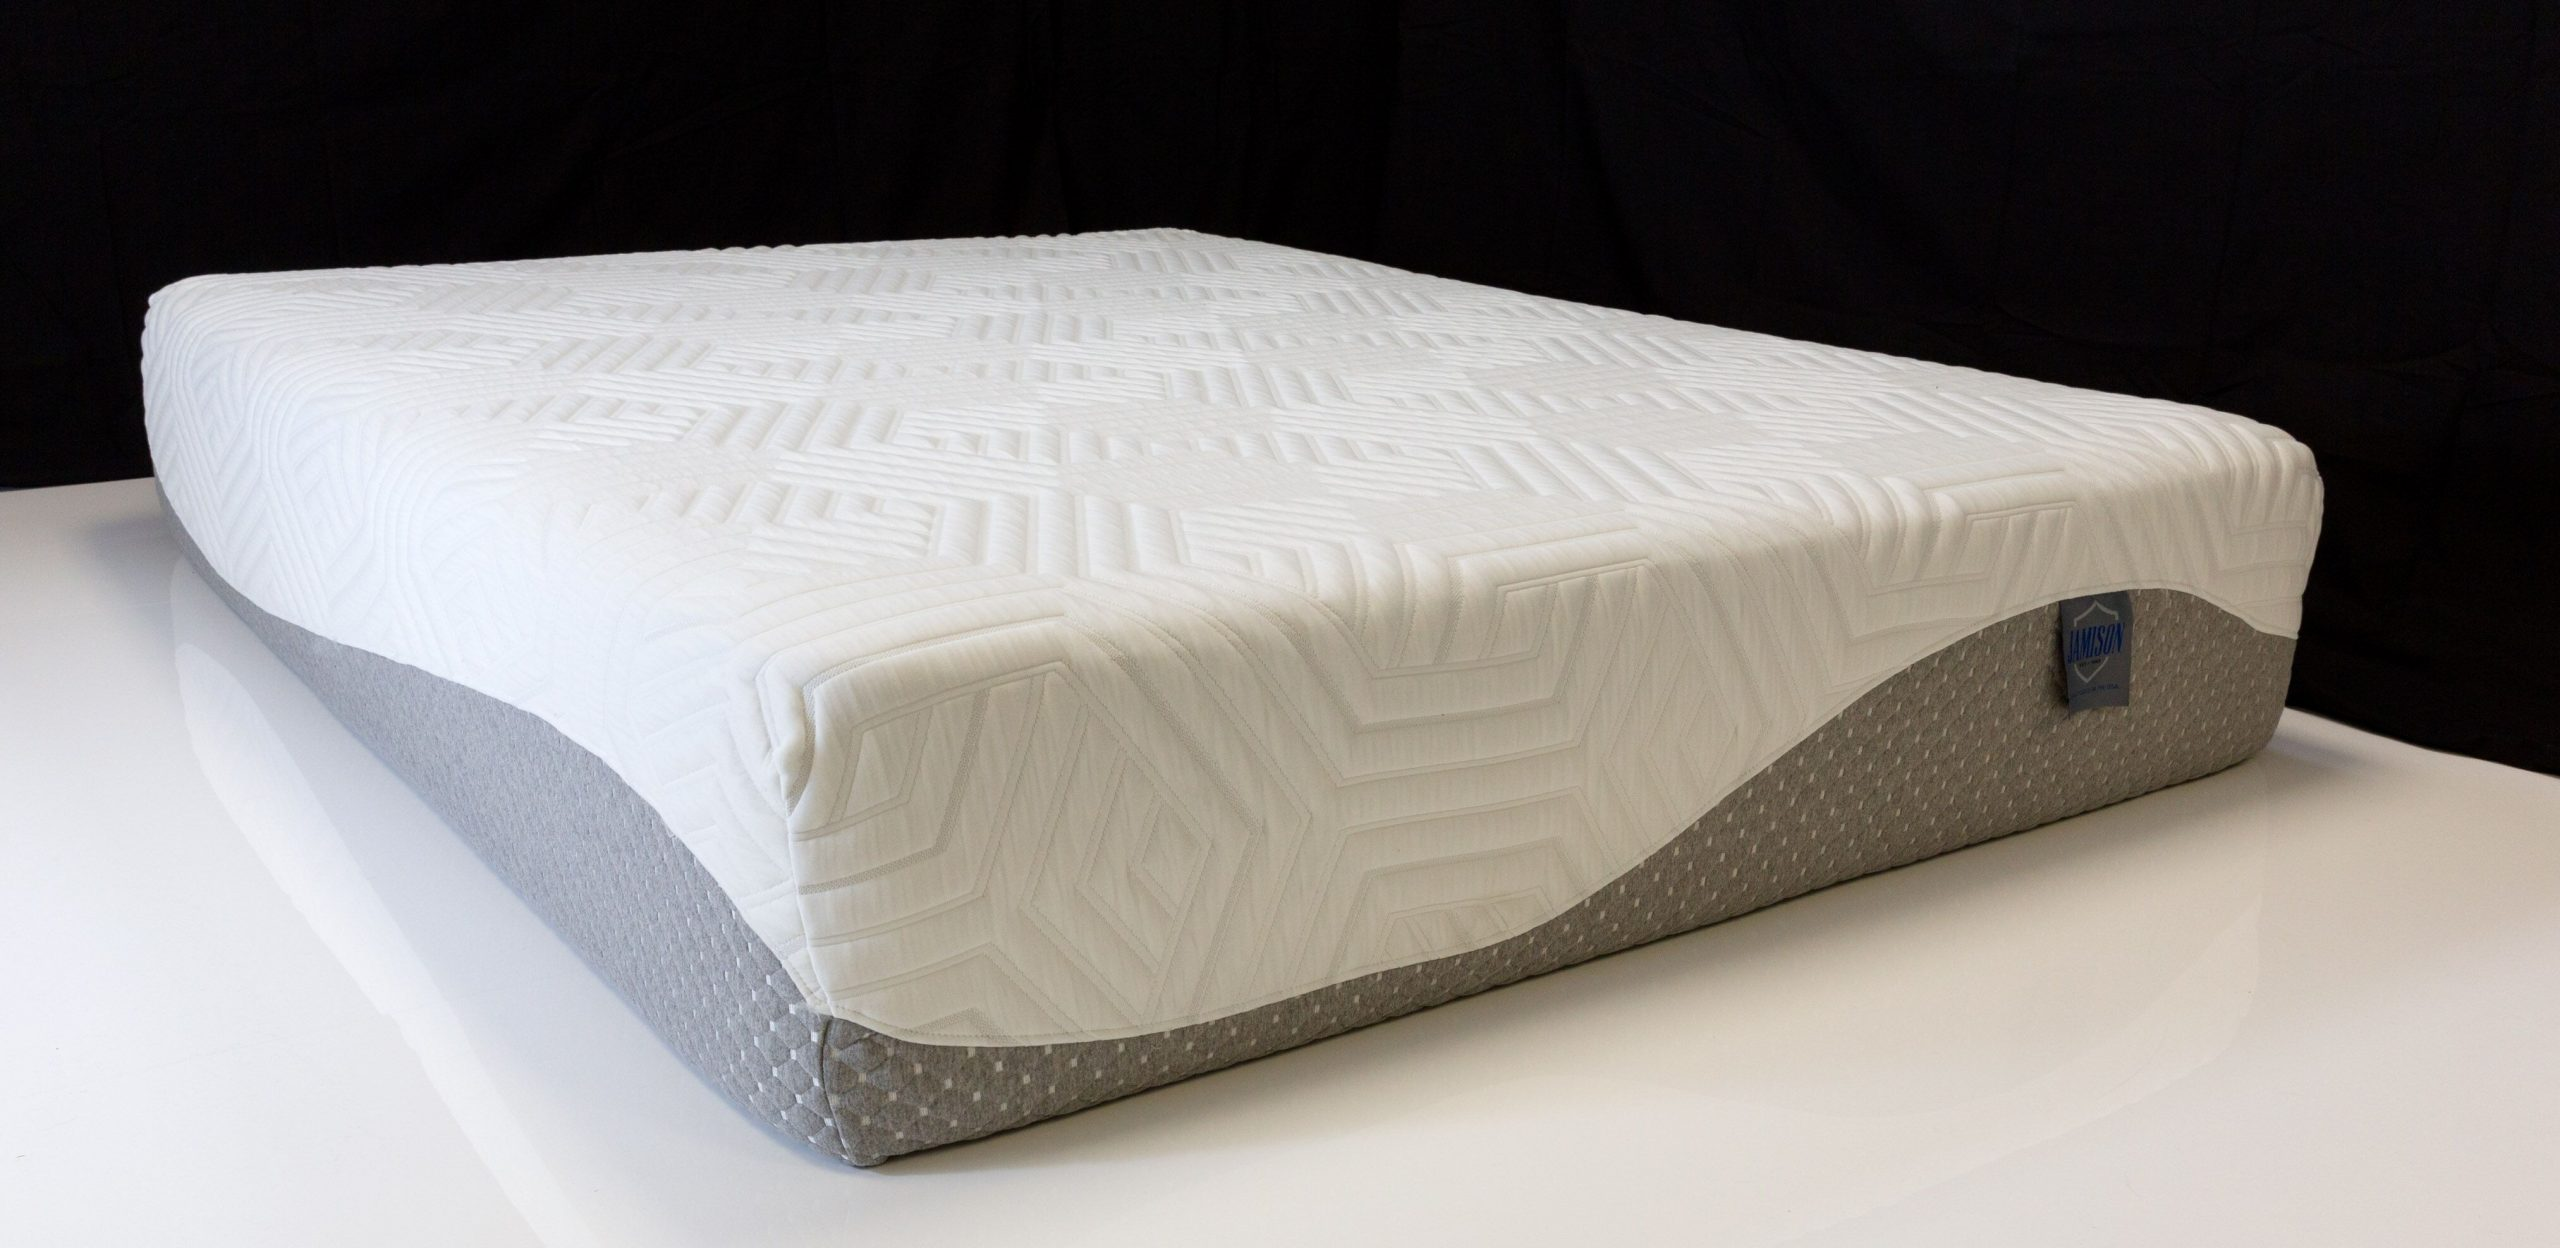 "Jamison TLC (The Latex Collection) 12.5"" Pure Natural Latex Ultra Plush Bordeau Mattress"